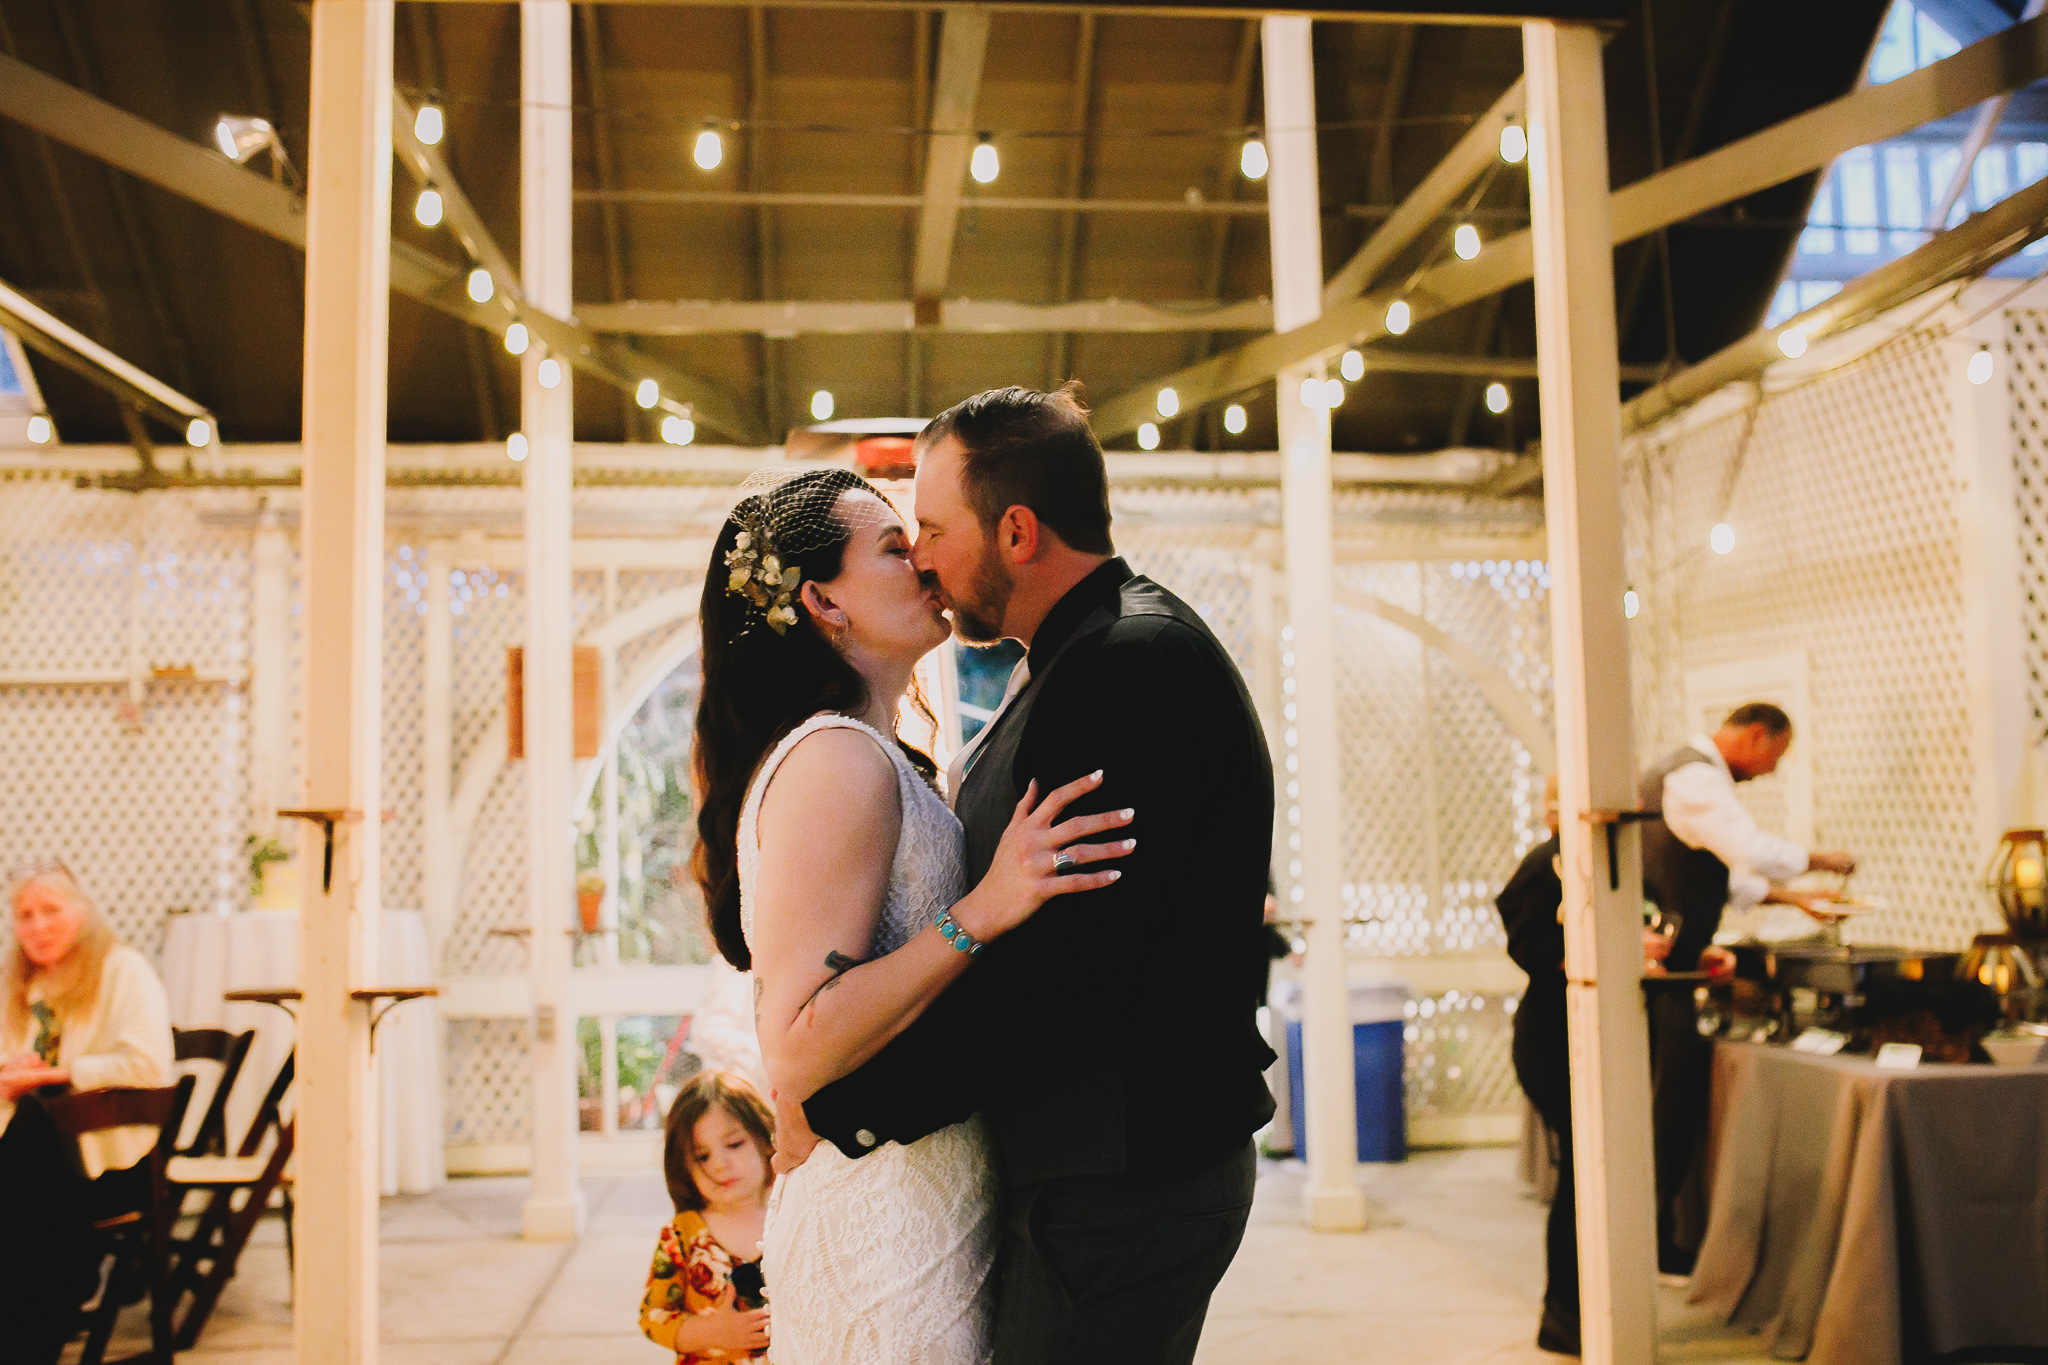 Archer Inspired Photography Sara and Aaron Winchester Mystery House NorCal San Jose California Wedding Photographer-528.jpg